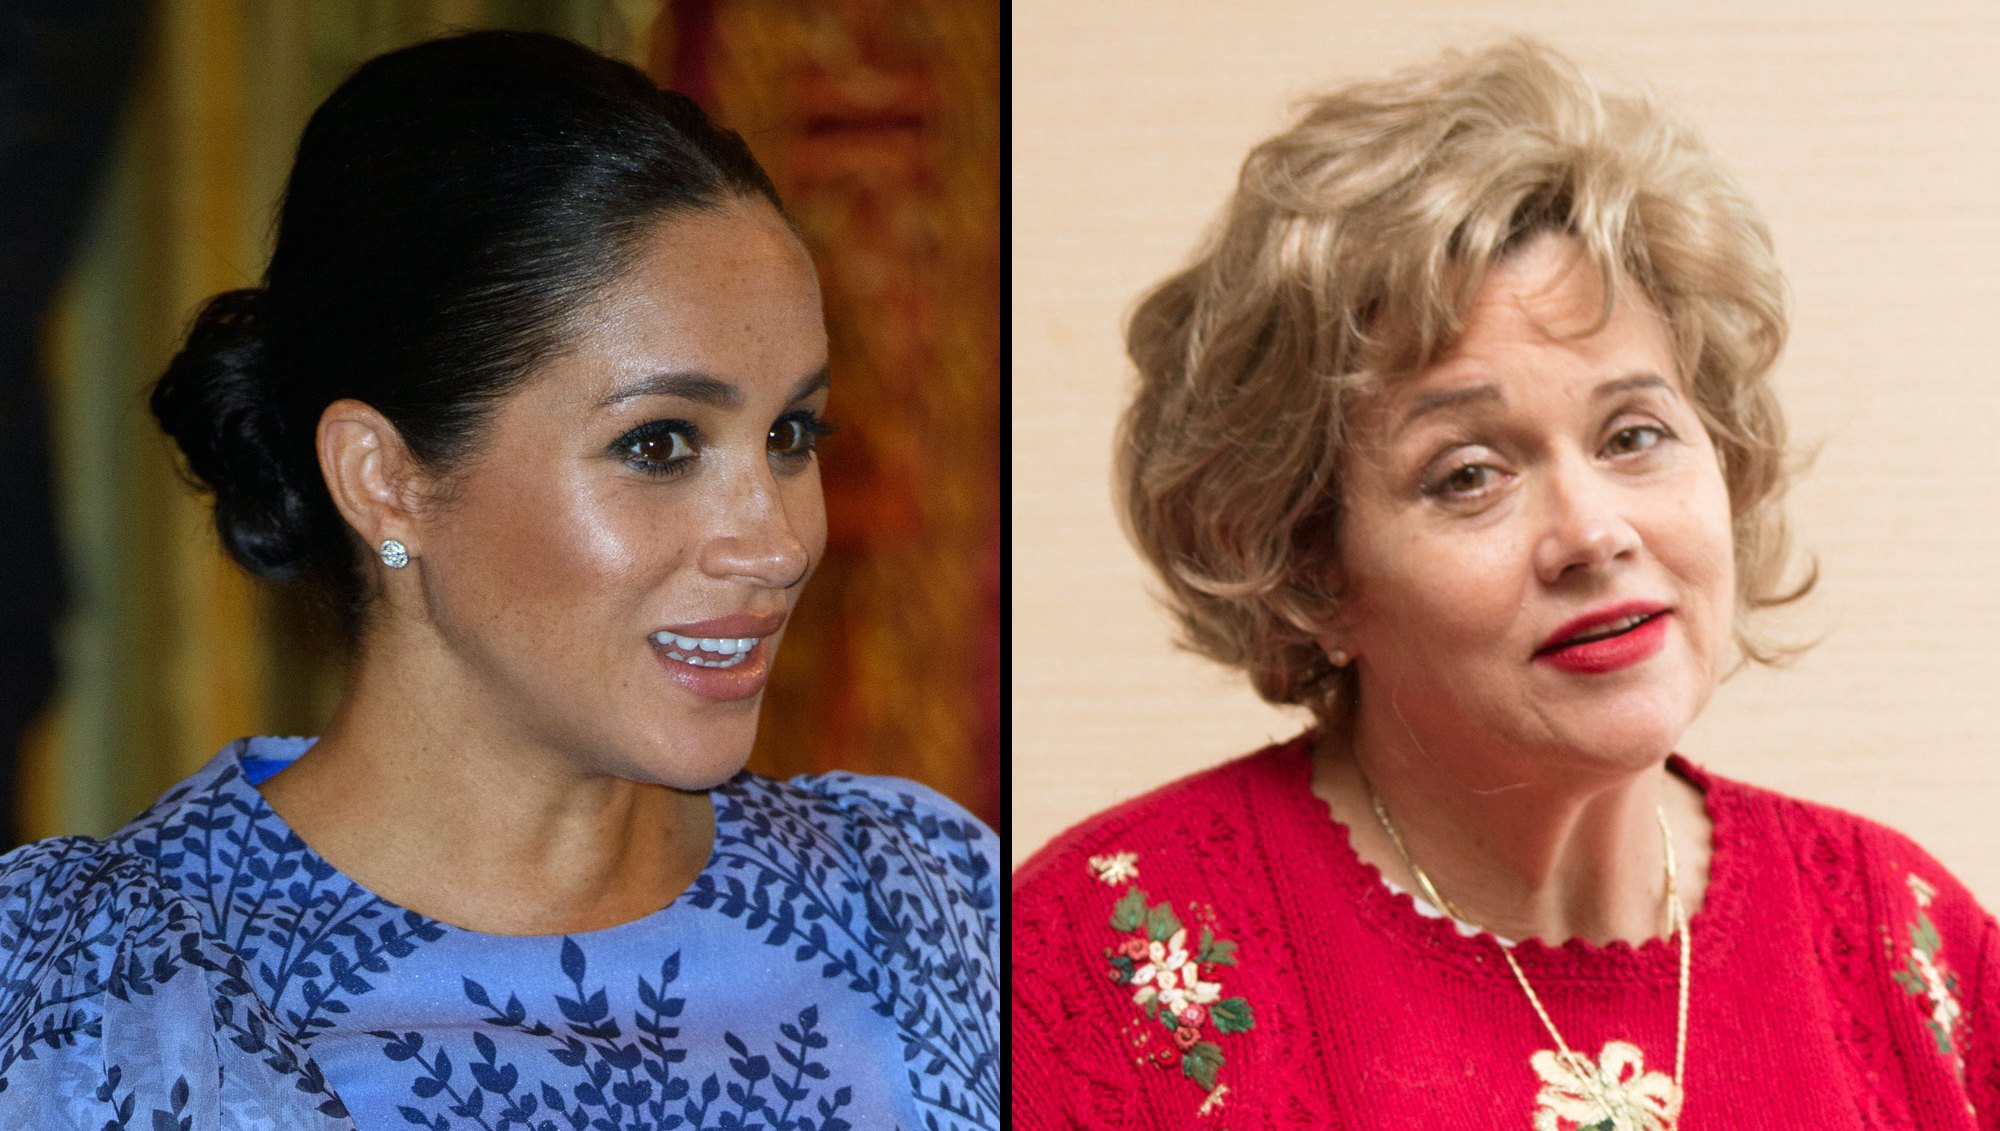 Duchess Meghan's Sister Samantha Markle Slams Her in New Documentary